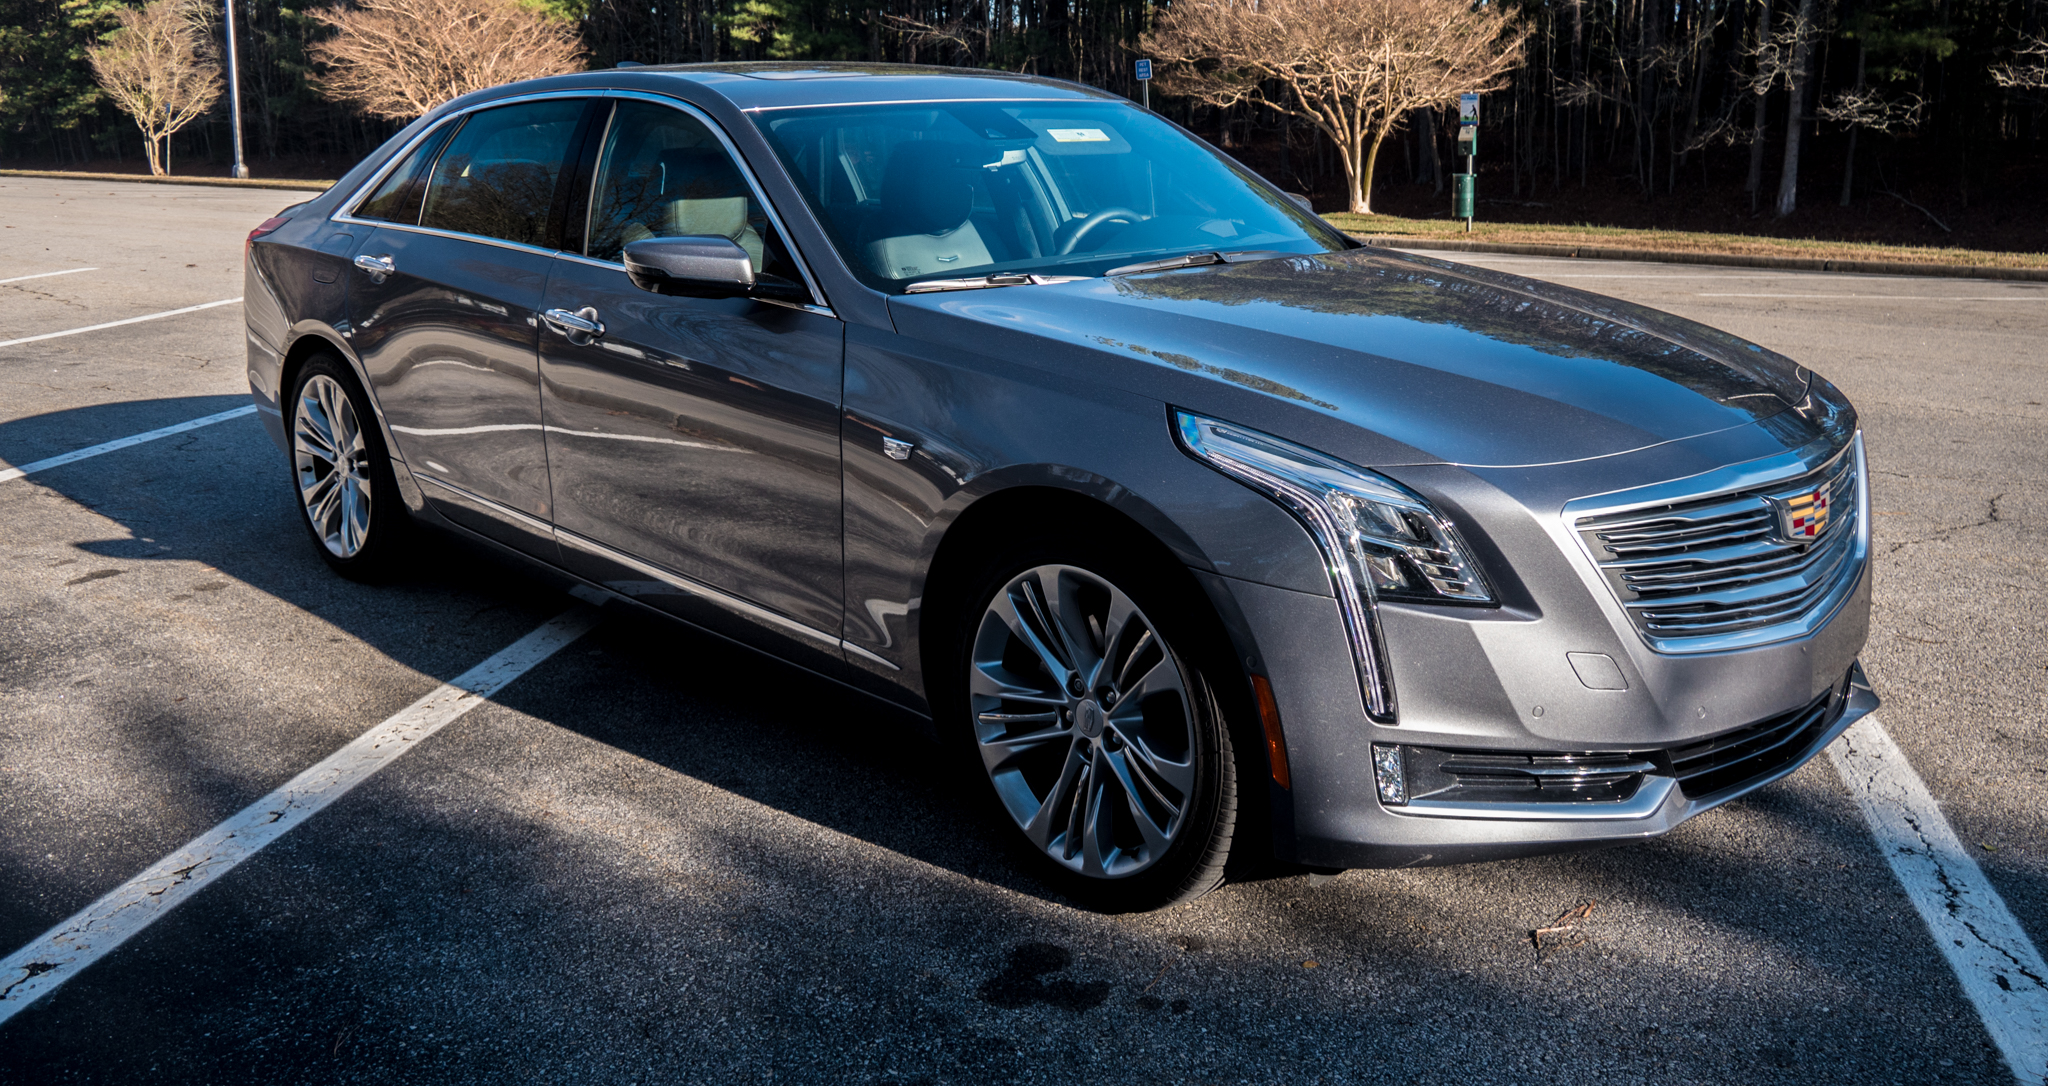 The Cadillac Ct6 Review Super Cruise Is A Game Changer Ars Technica